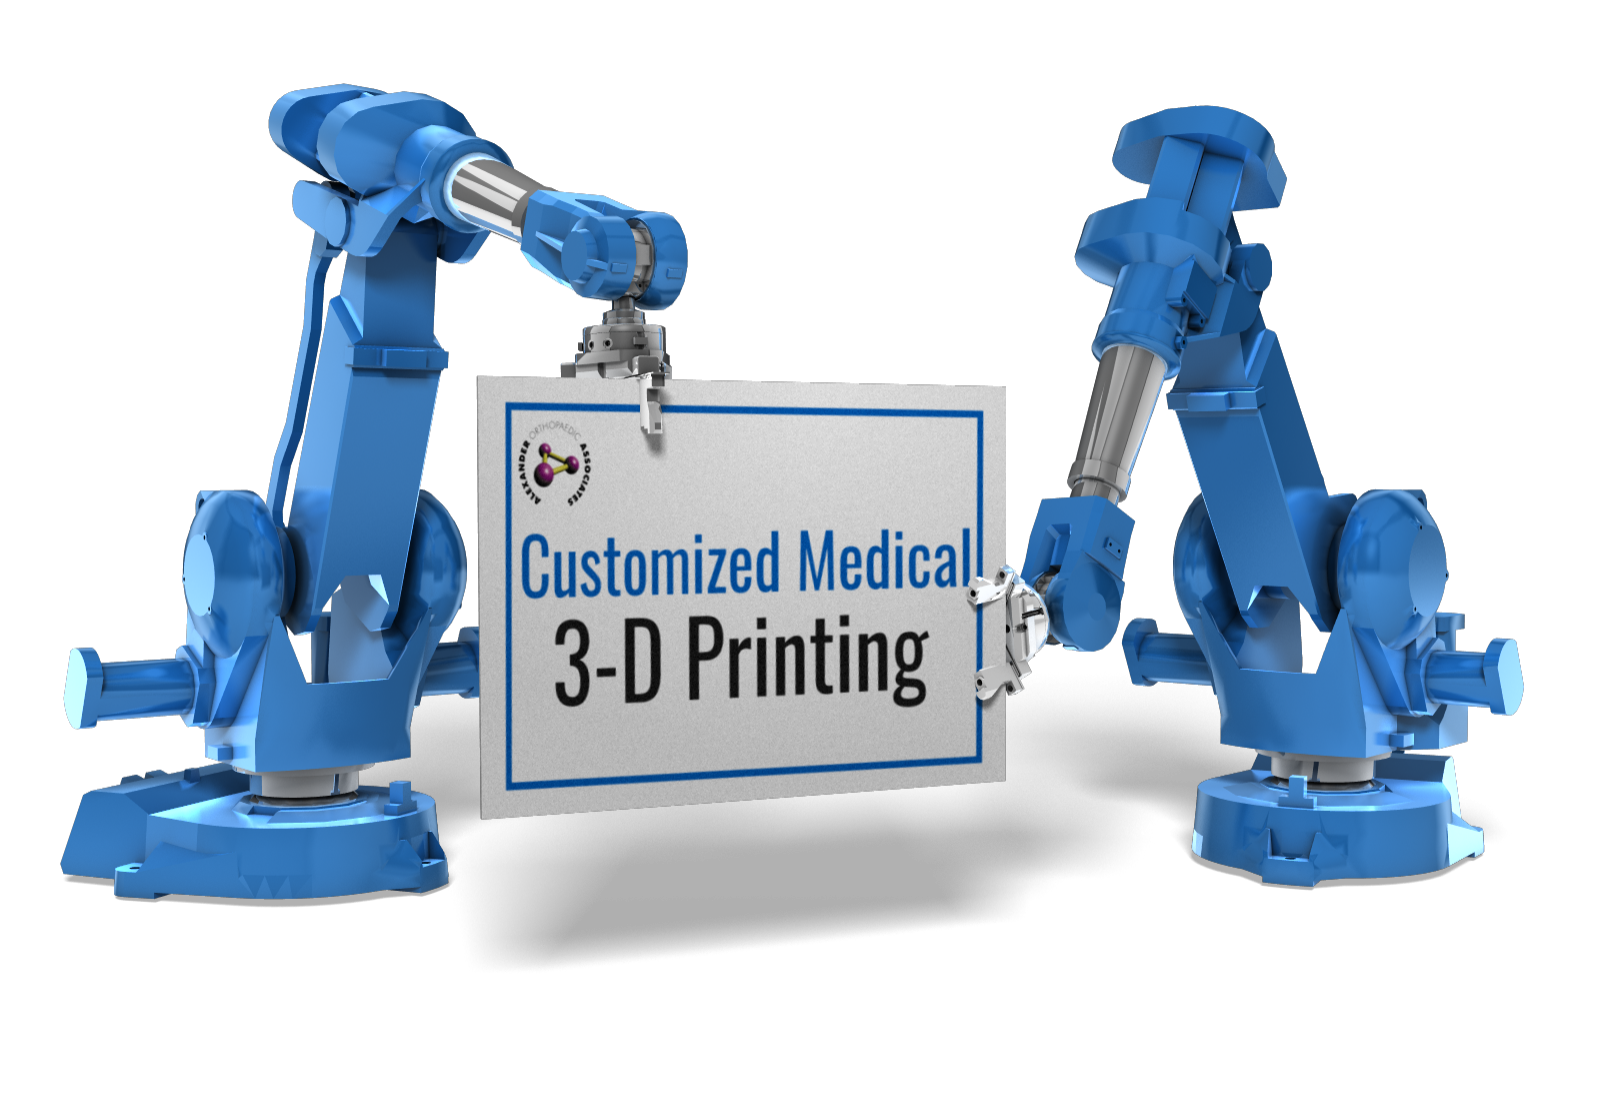 Customized 3D Medical Printing